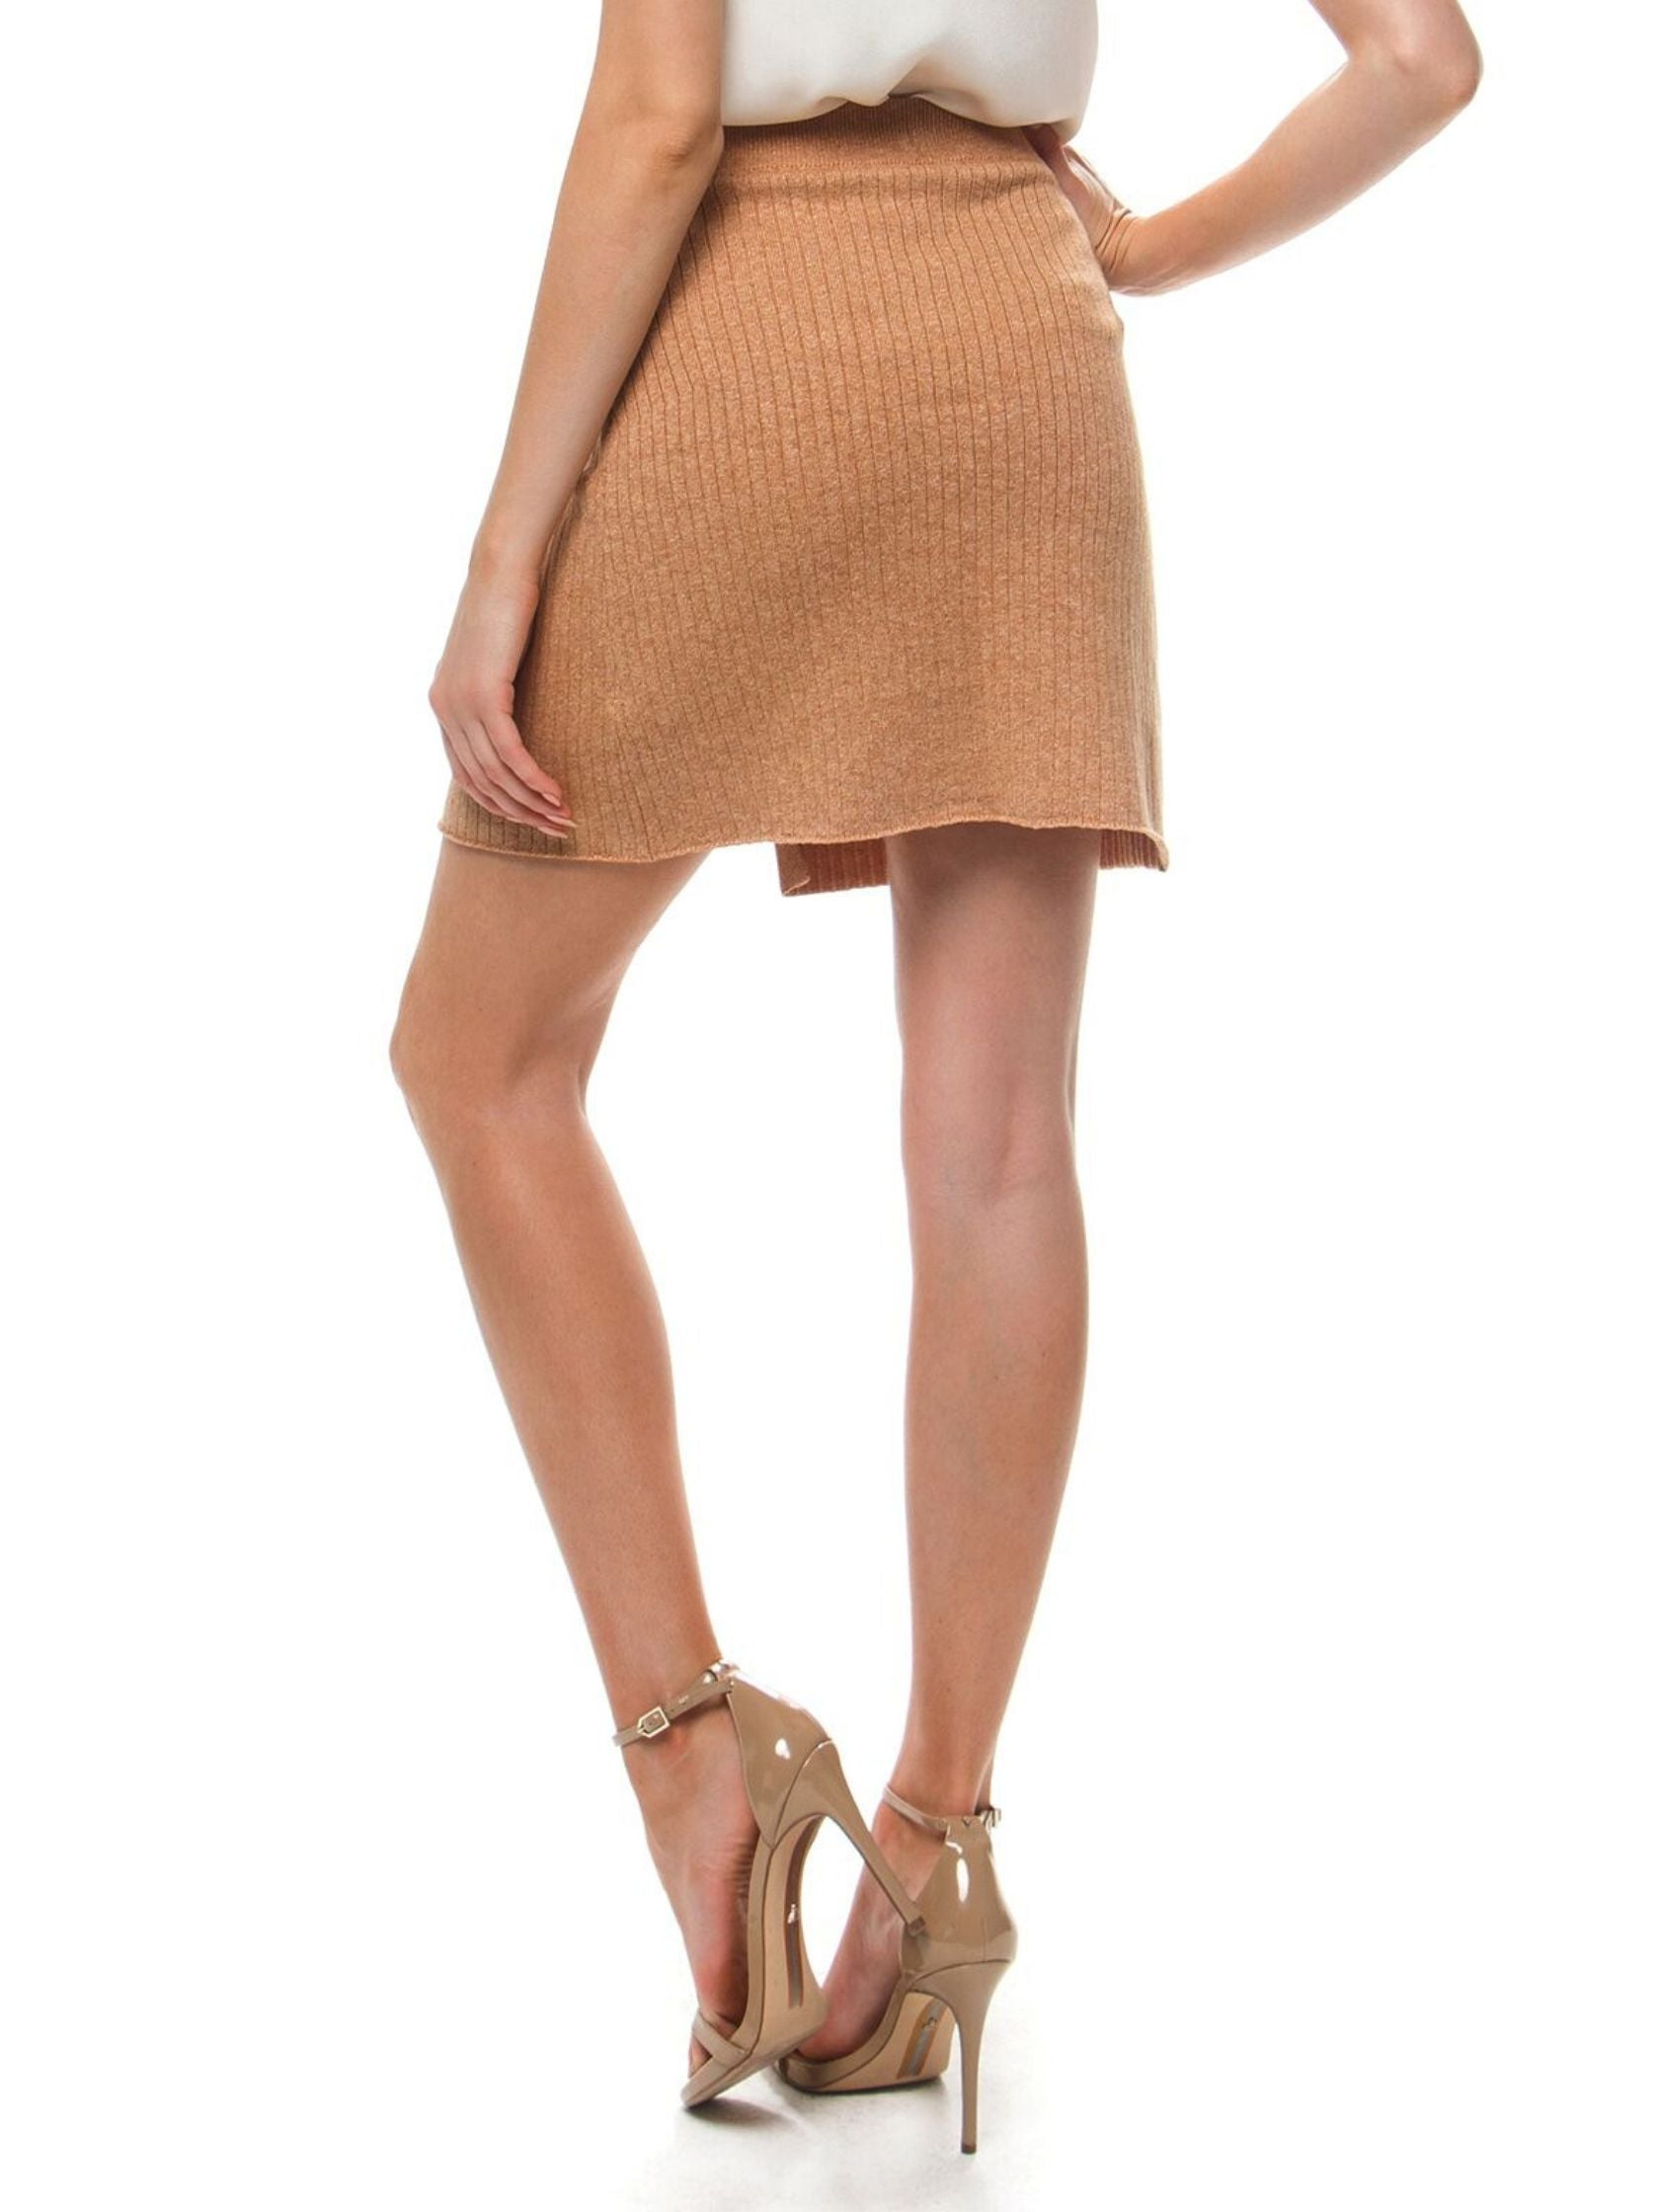 Women outfit in a skirt rental from Free People called Mod Wrap Skirt